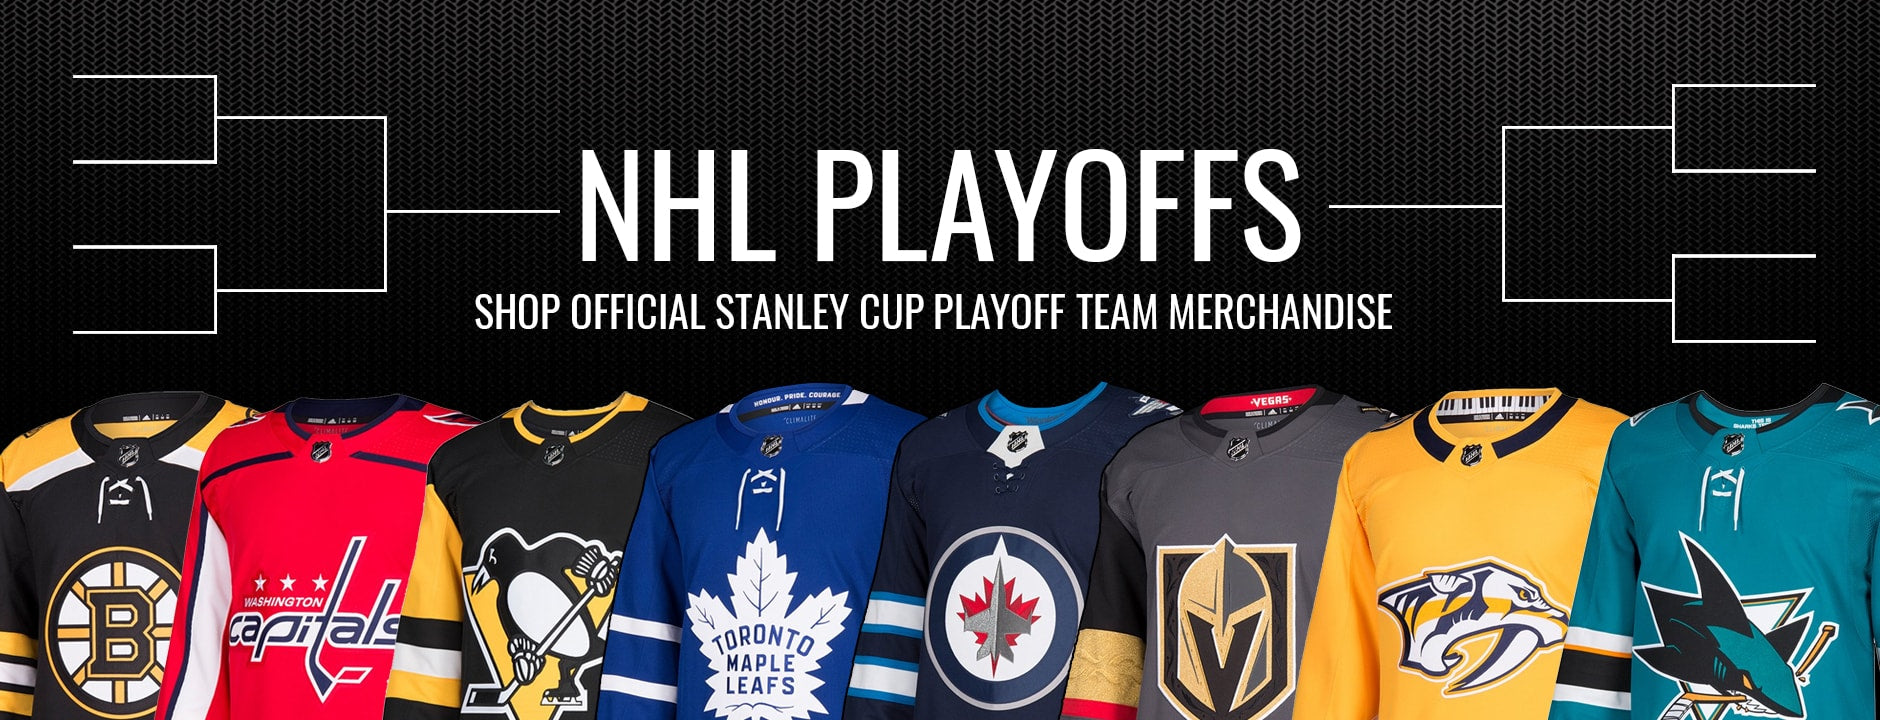 bc322d7c Pro Hockey Life is the #1 destination for the 2019 Stanley Cup Playoffs.  Shop Jerseys, Hats, Clothing, Merchandise and Memorabilia from all 16 NHL  teams in ...